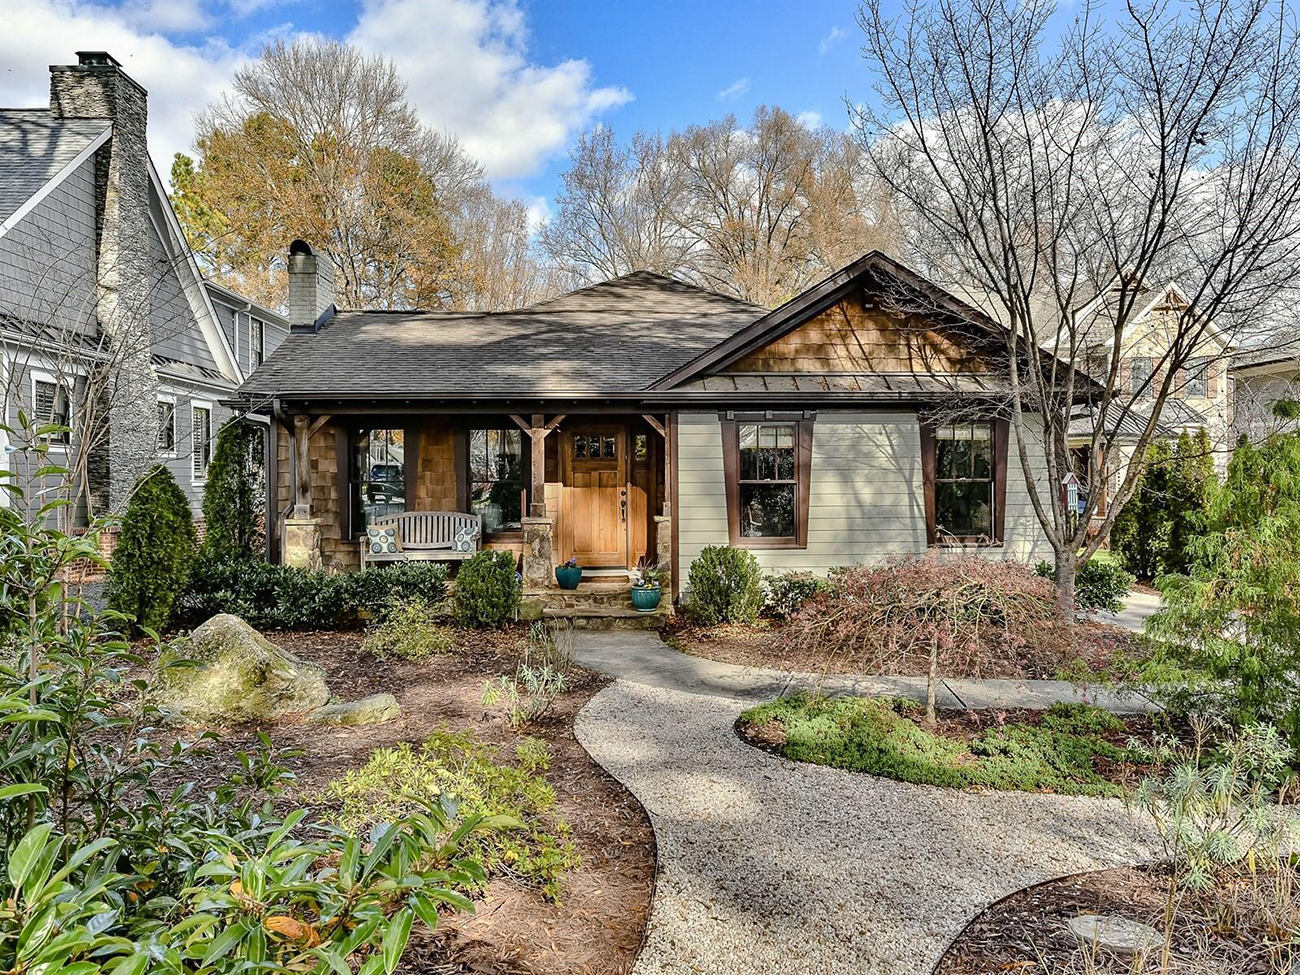 Unique to the neighborhood: Myers Park house with mountain vibes asks $774,000